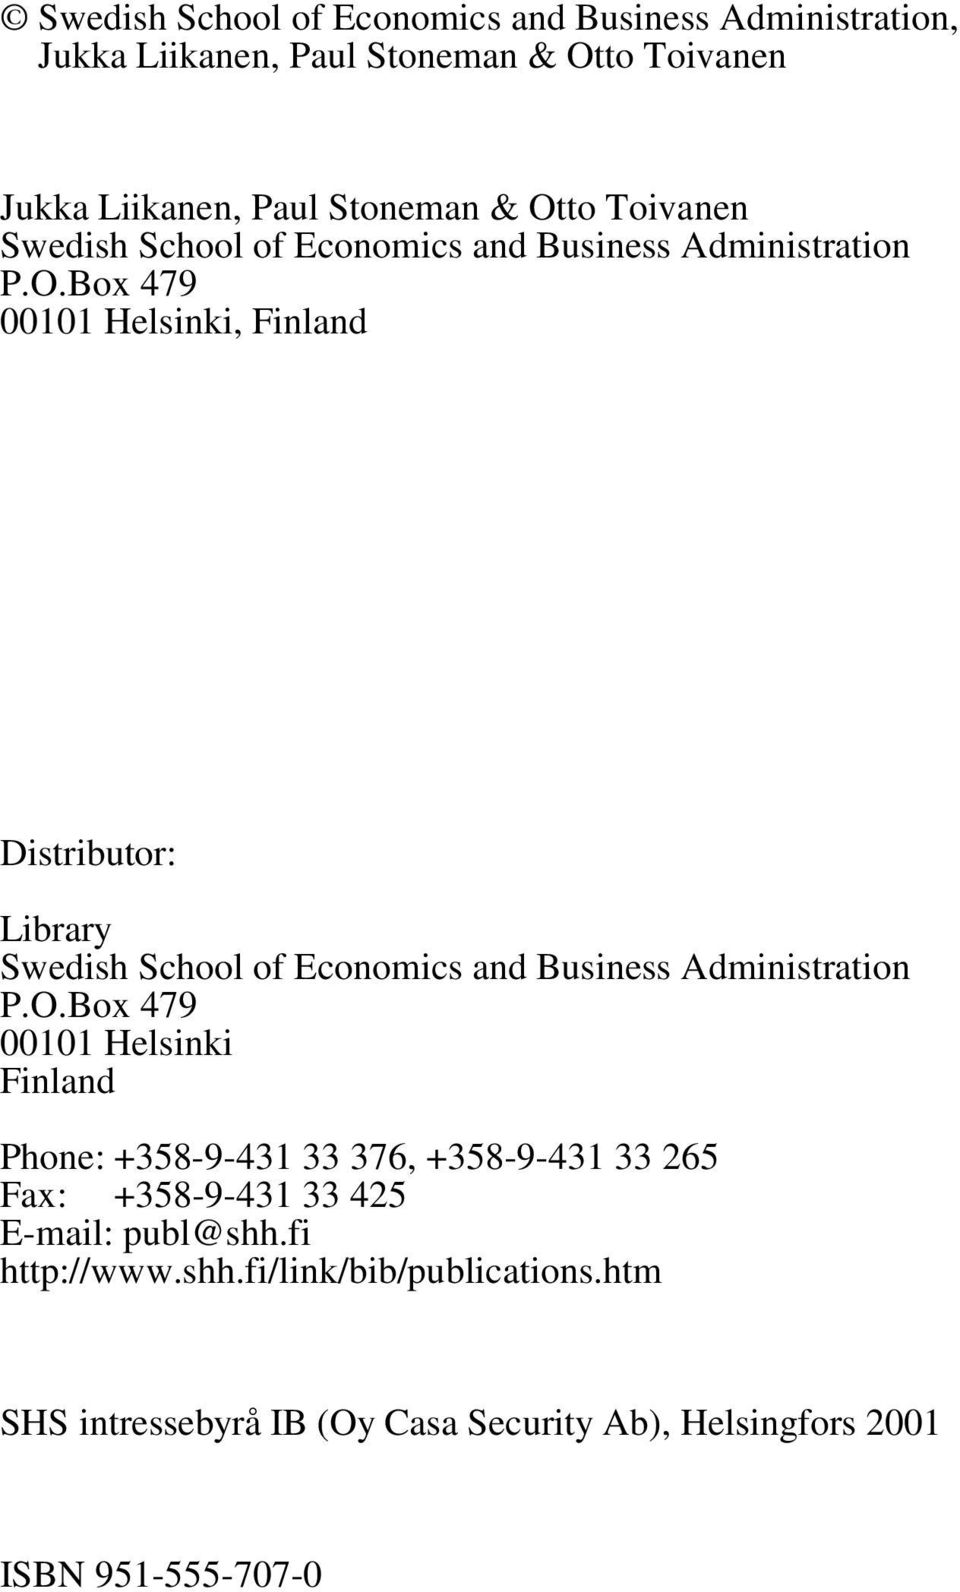 Box 479 00101 Helsinki, Finland Disribuor: Library Swedish School of Economics and Business Adminisraion P.O.